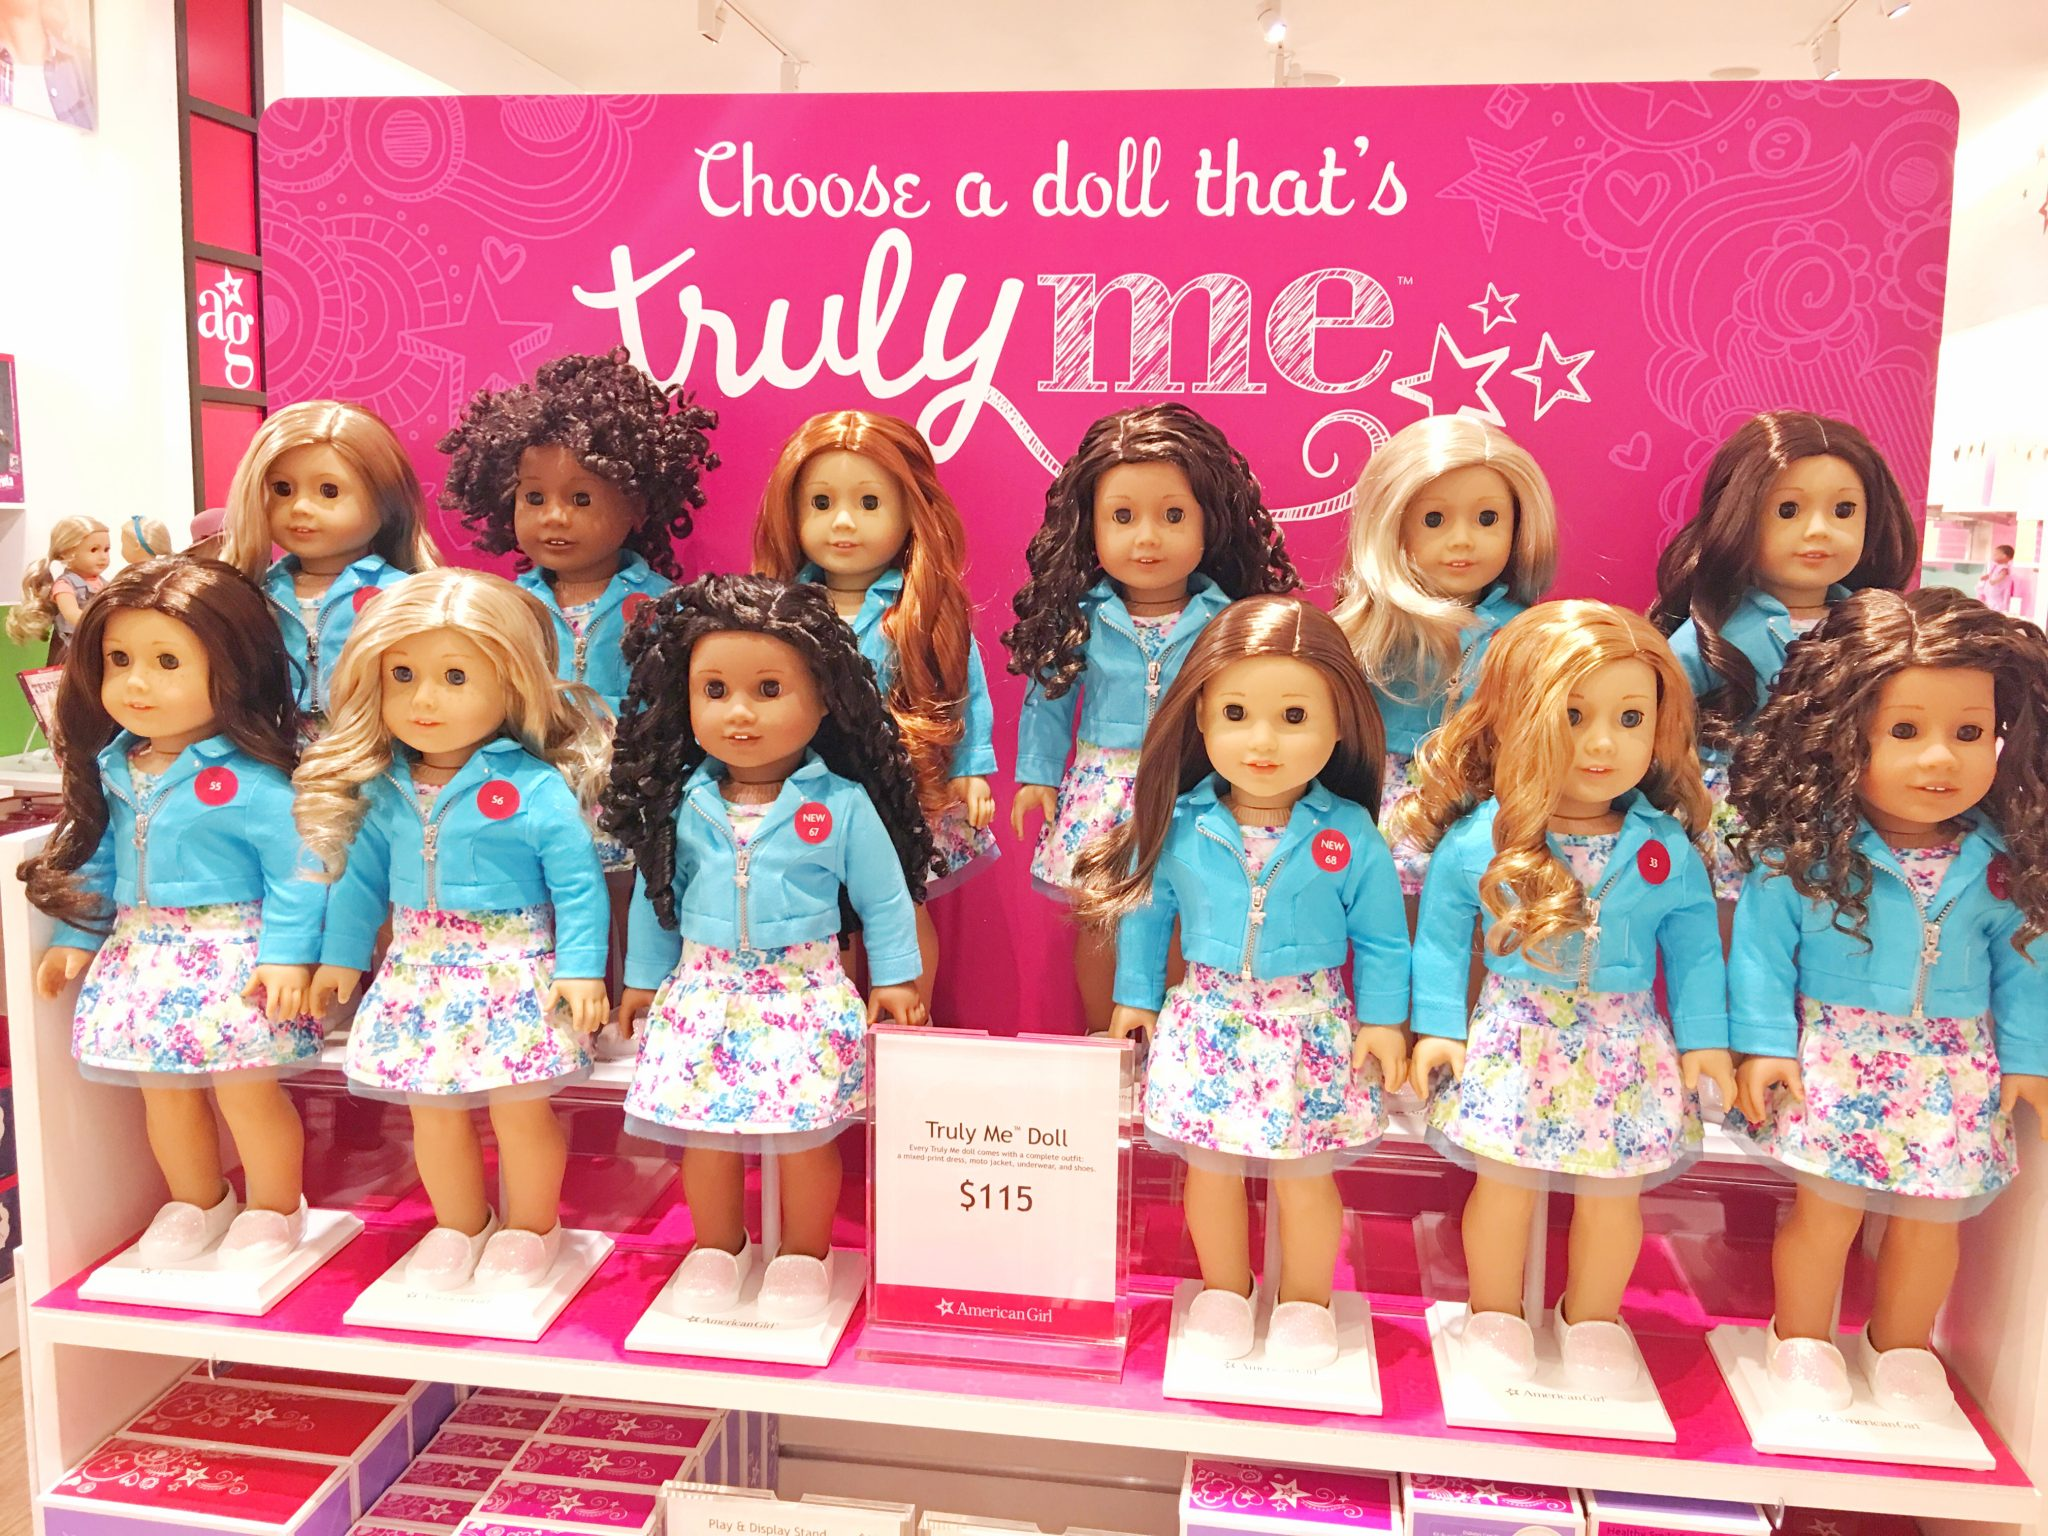 Truly Me Doll American Girl at Washington Square Mall